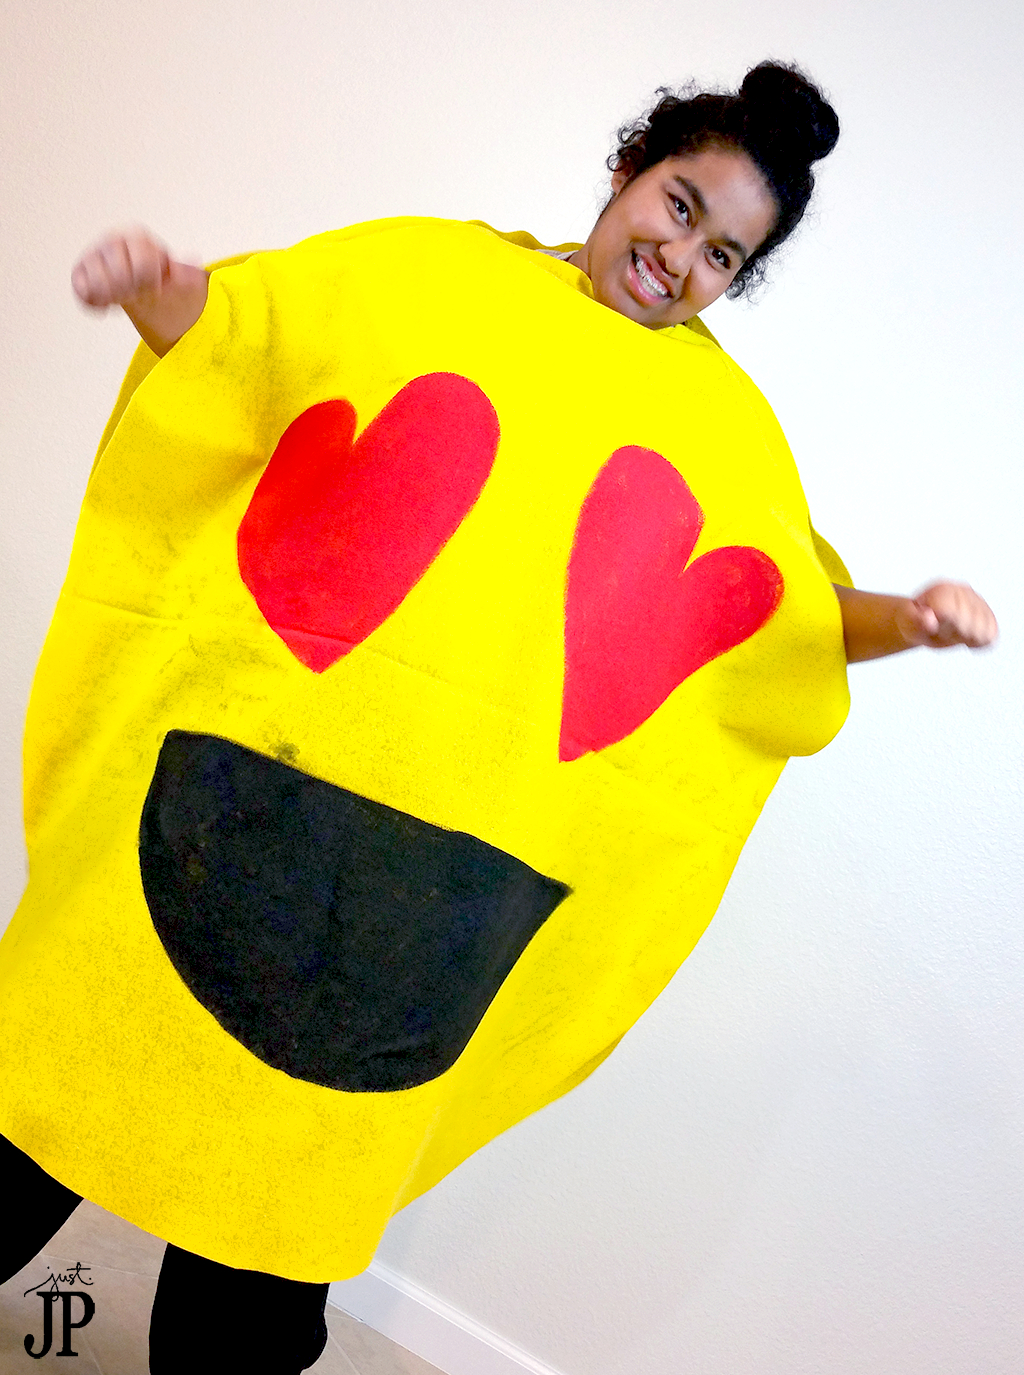 Two no sew diy emoji costumes for under 25 jphalloween fast and easy diy emjoi costumes awesome video tutorials for two emoji costumes solutioingenieria Gallery